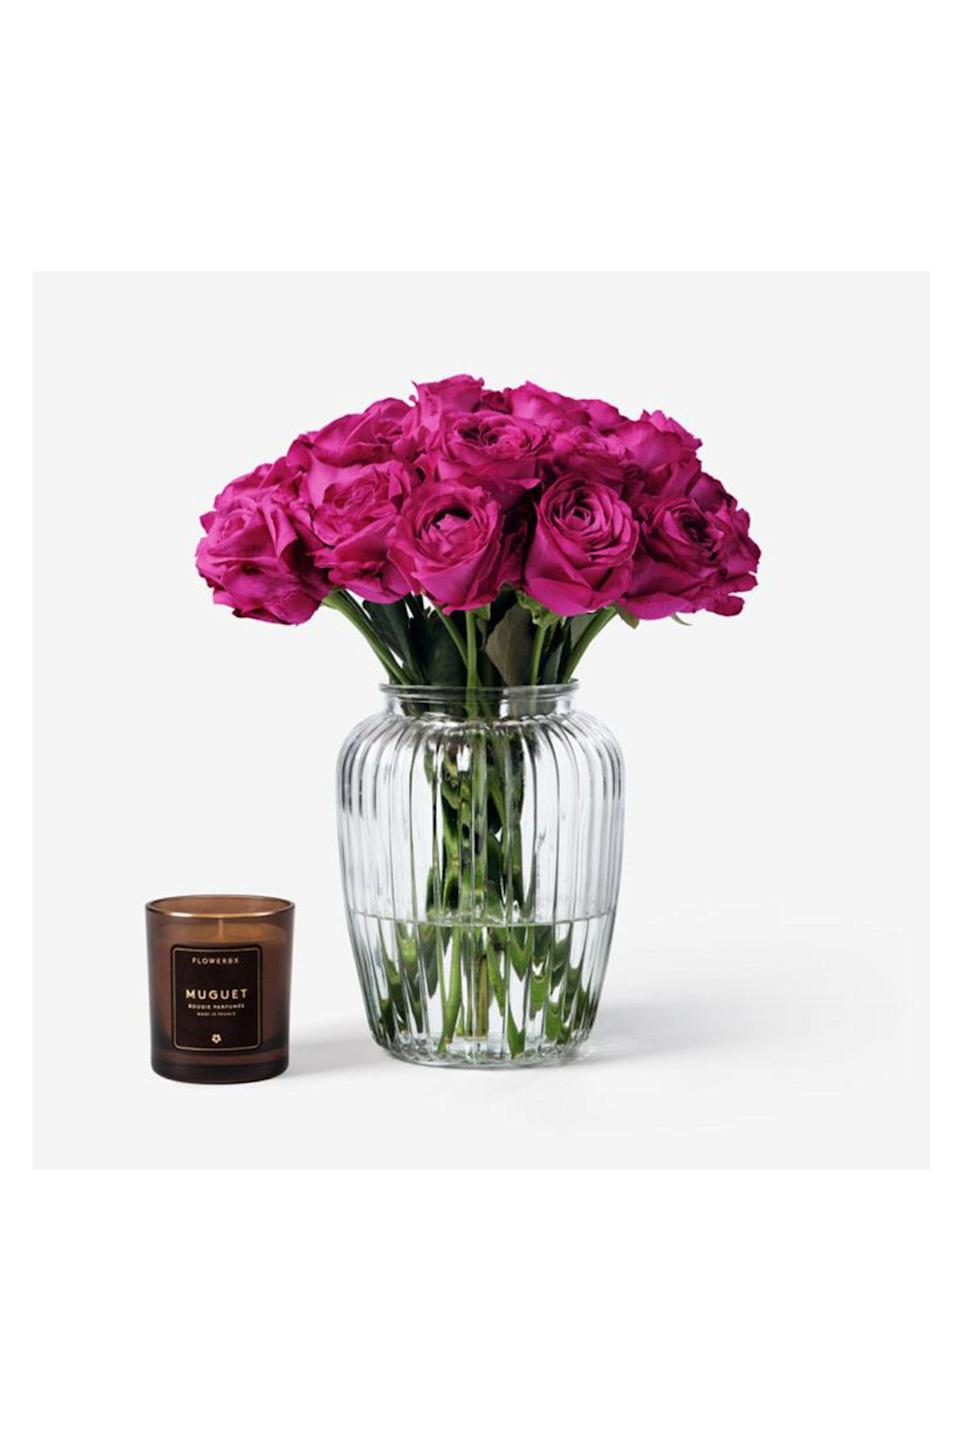 """<p><strong>Flowerbx</strong></p><p>flowerbx.com</p><p><strong>$90.00</strong></p><p><a href=""""https://go.redirectingat.com?id=74968X1596630&url=https%3A%2F%2Fwww.flowerbx.com%2Fus%2Fcrazy-in-love-rose&sref=https%3A%2F%2Fwww.redbookmag.com%2Flife%2Fg35152525%2Fbest-flower-delivery-service%2F"""" rel=""""nofollow noopener"""" target=""""_blank"""" data-ylk=""""slk:Shop Now"""" class=""""link rapid-noclick-resp"""">Shop Now</a></p><p>Based in London, <a href=""""https://www.flowerbx.com/us/"""" rel=""""nofollow noopener"""" target=""""_blank"""" data-ylk=""""slk:FlowerBx"""" class=""""link rapid-noclick-resp"""">FlowerBx</a> is the fashion industry's favorite florist, with clients including Louis Vuitton, Dior, and soon, your S.O.. By cutting out the middle man, they deliver longer-lasting stems directly to their customers in NYC and the northeast United States.</p>"""